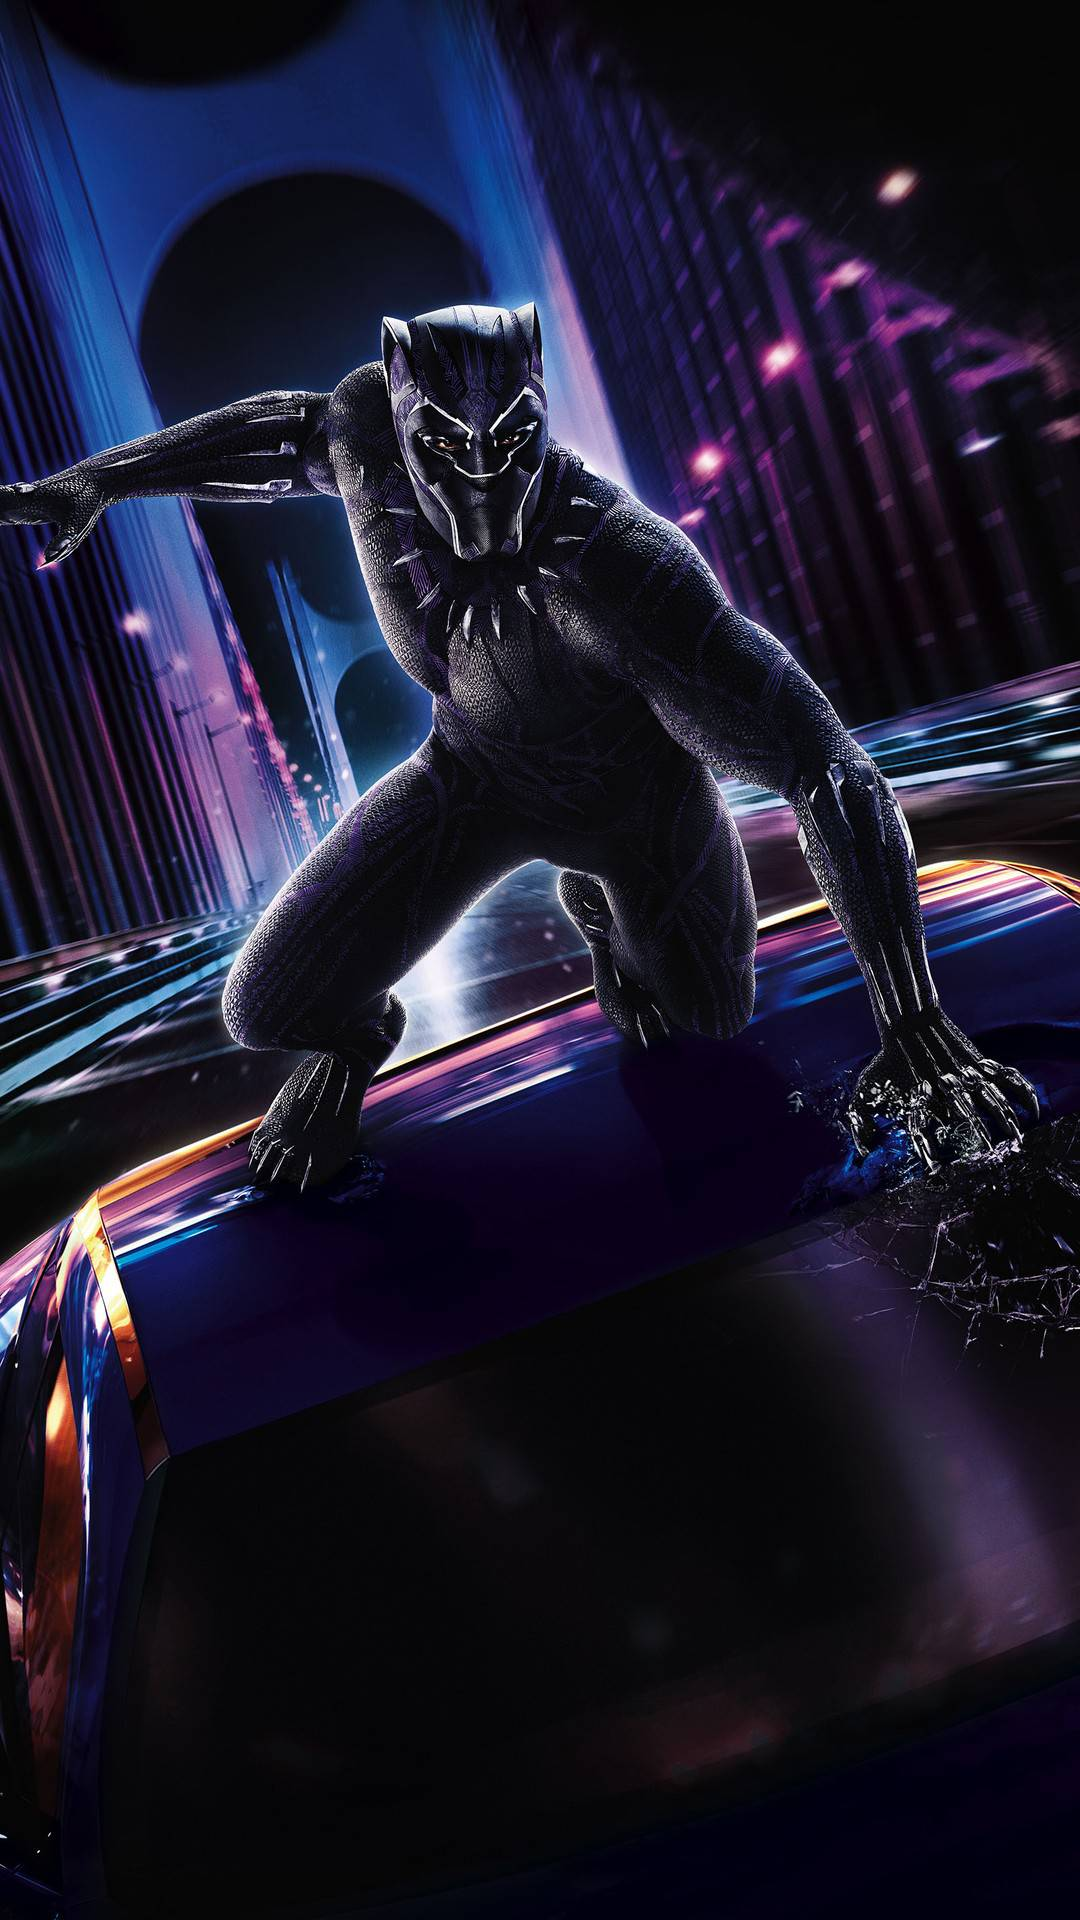 Nature Images Wallpapers With Quotes Marvel Black Panther Action Iphone Wallpaper Iphone